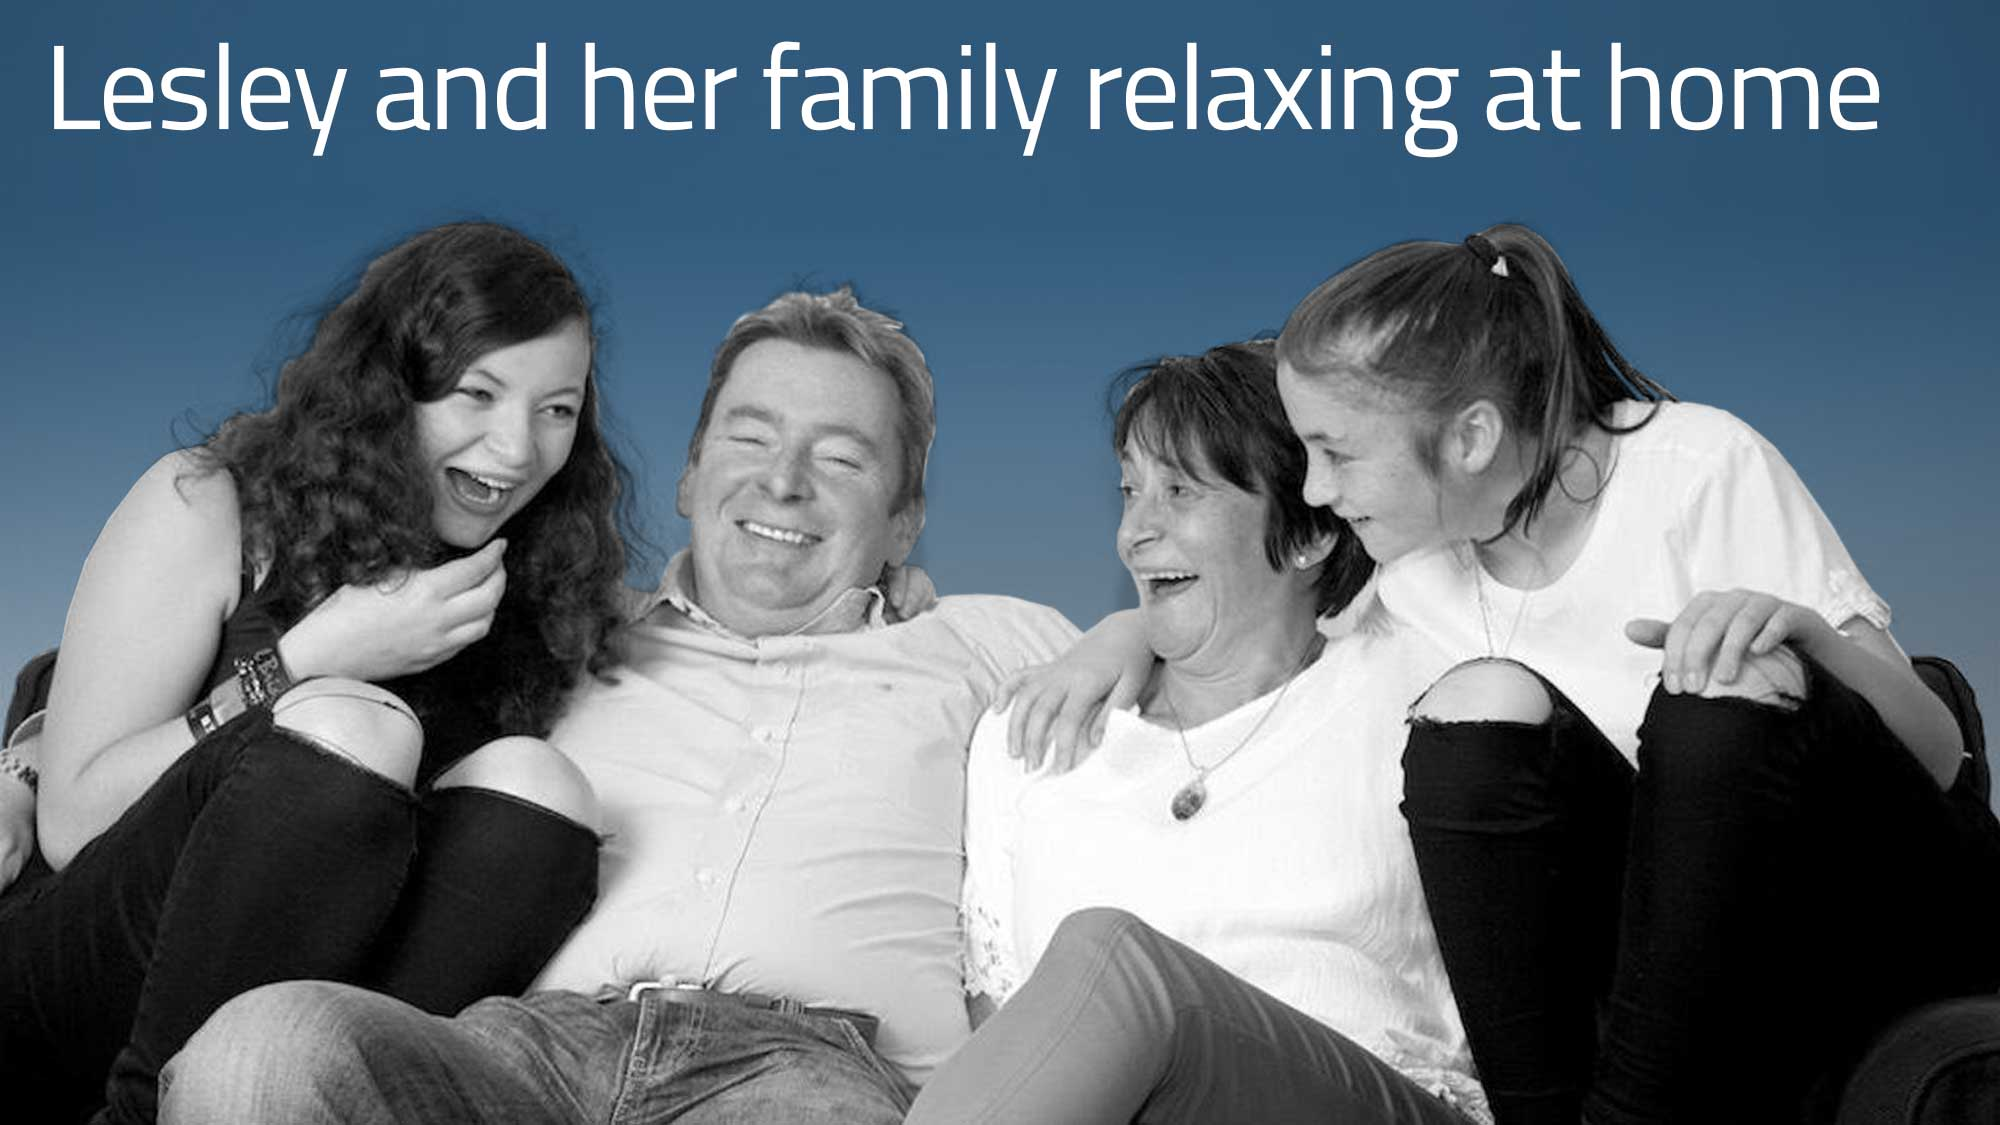 Lesley and her family relaxing at home